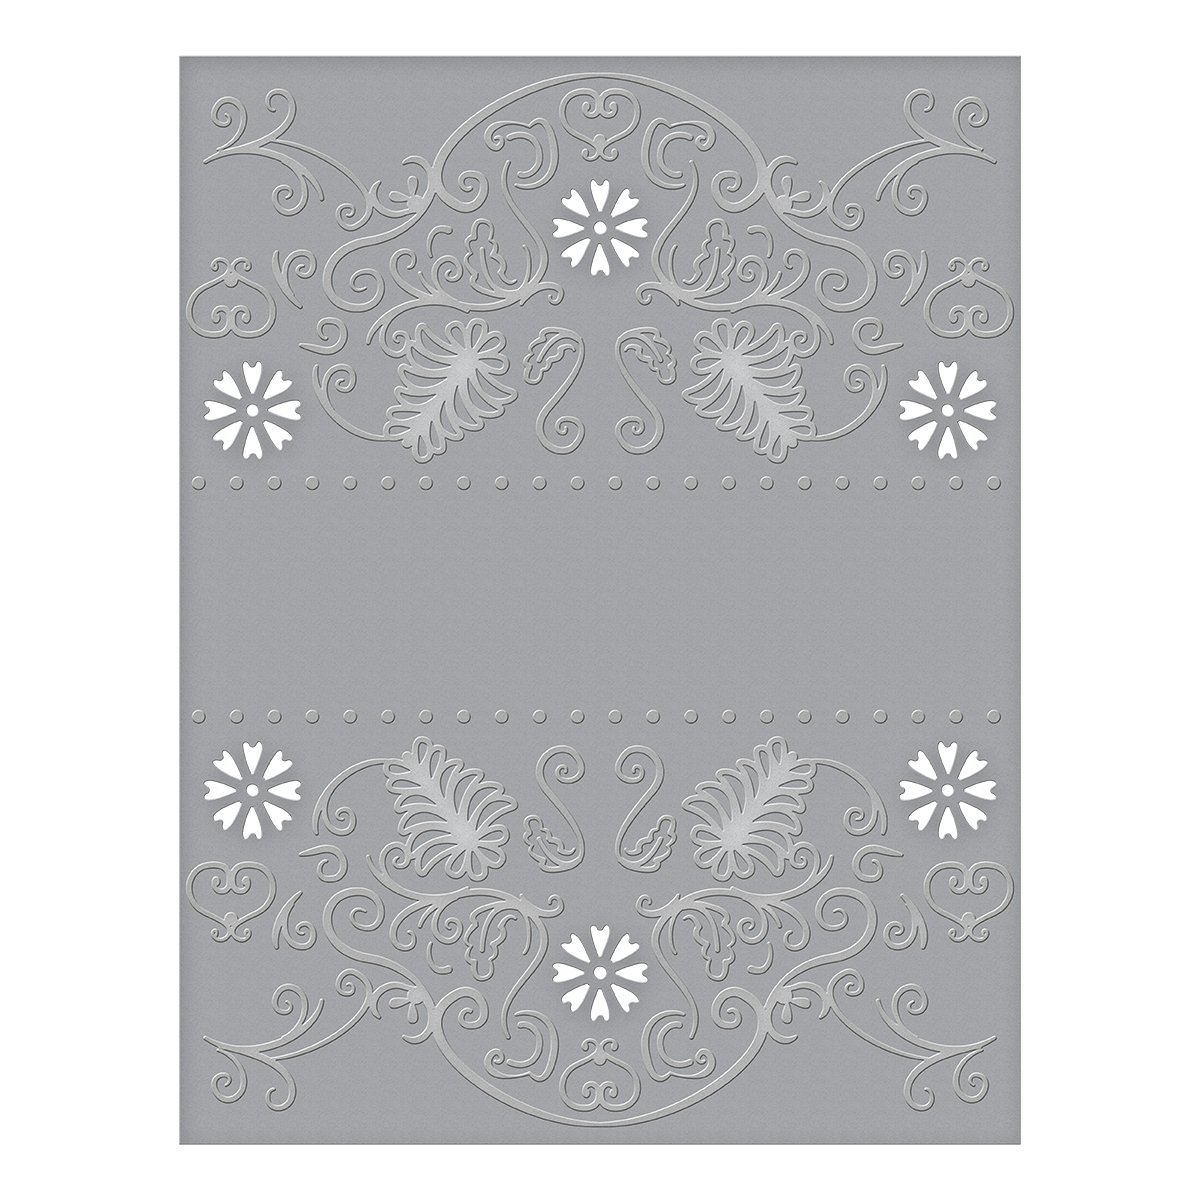 Spellbinders CEF-009 Flora Banner Cut and Emboss Folder